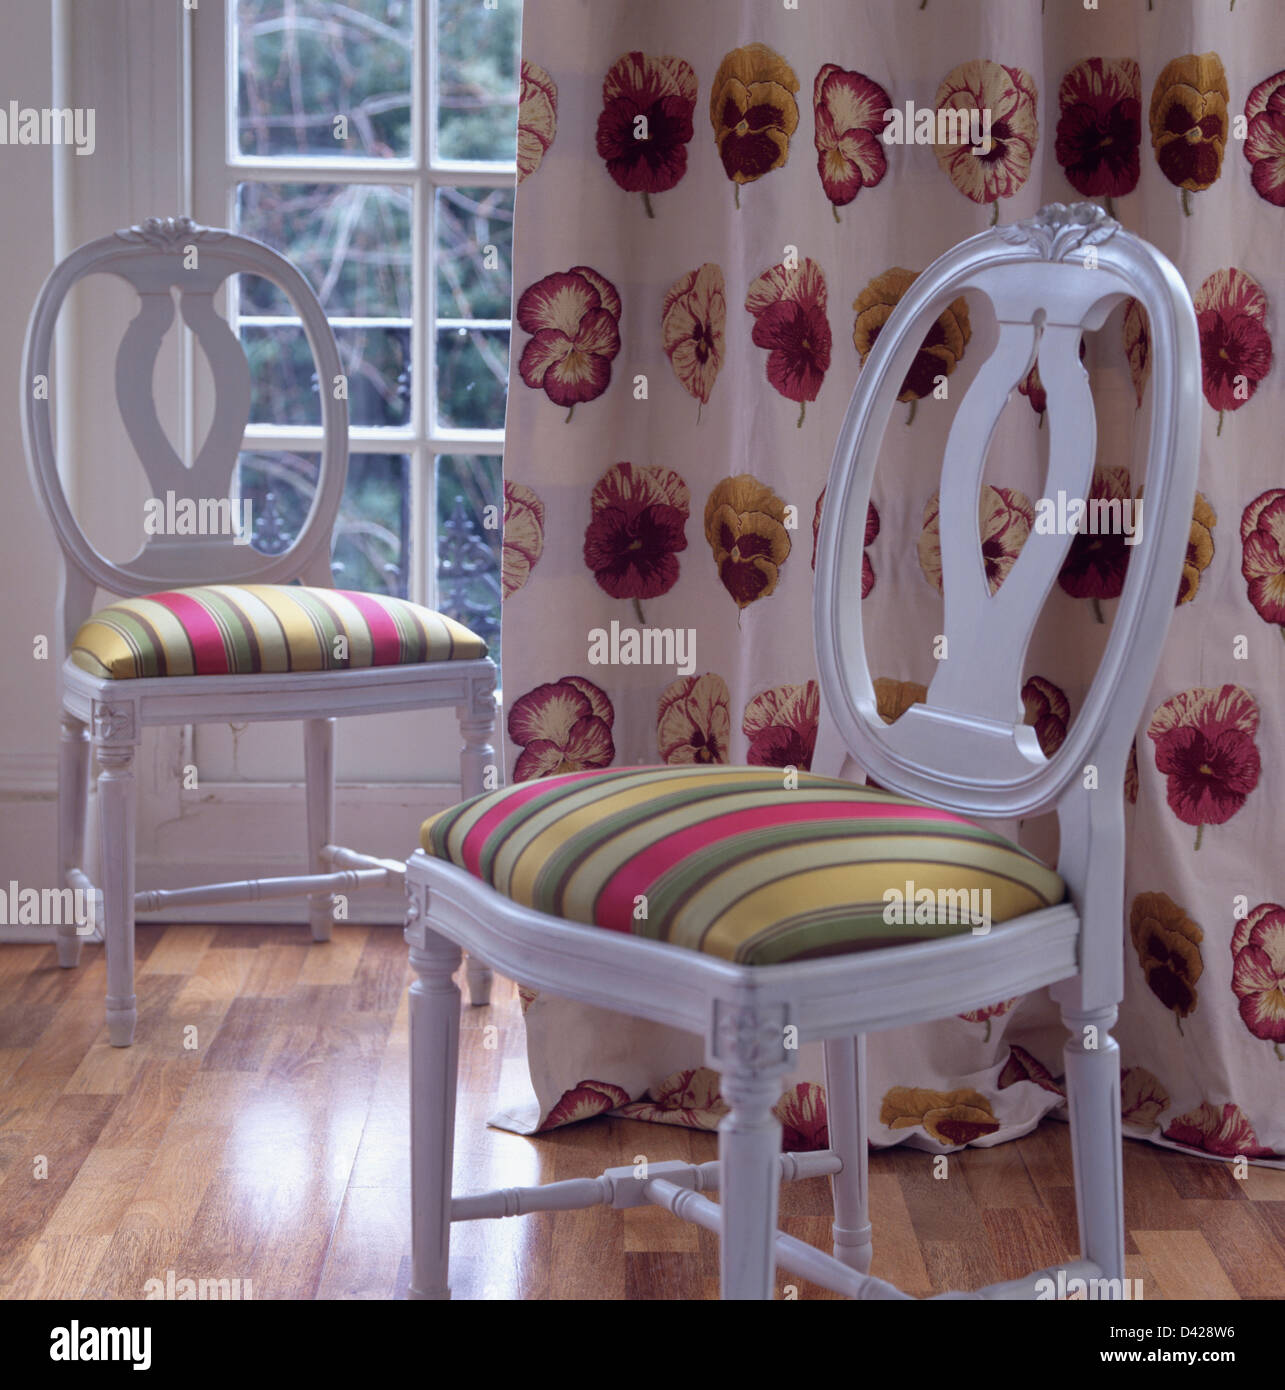 Colorful Striped Upholstered Seats On White French Style Dining Chairs  Against Pansy Patterned Curtain